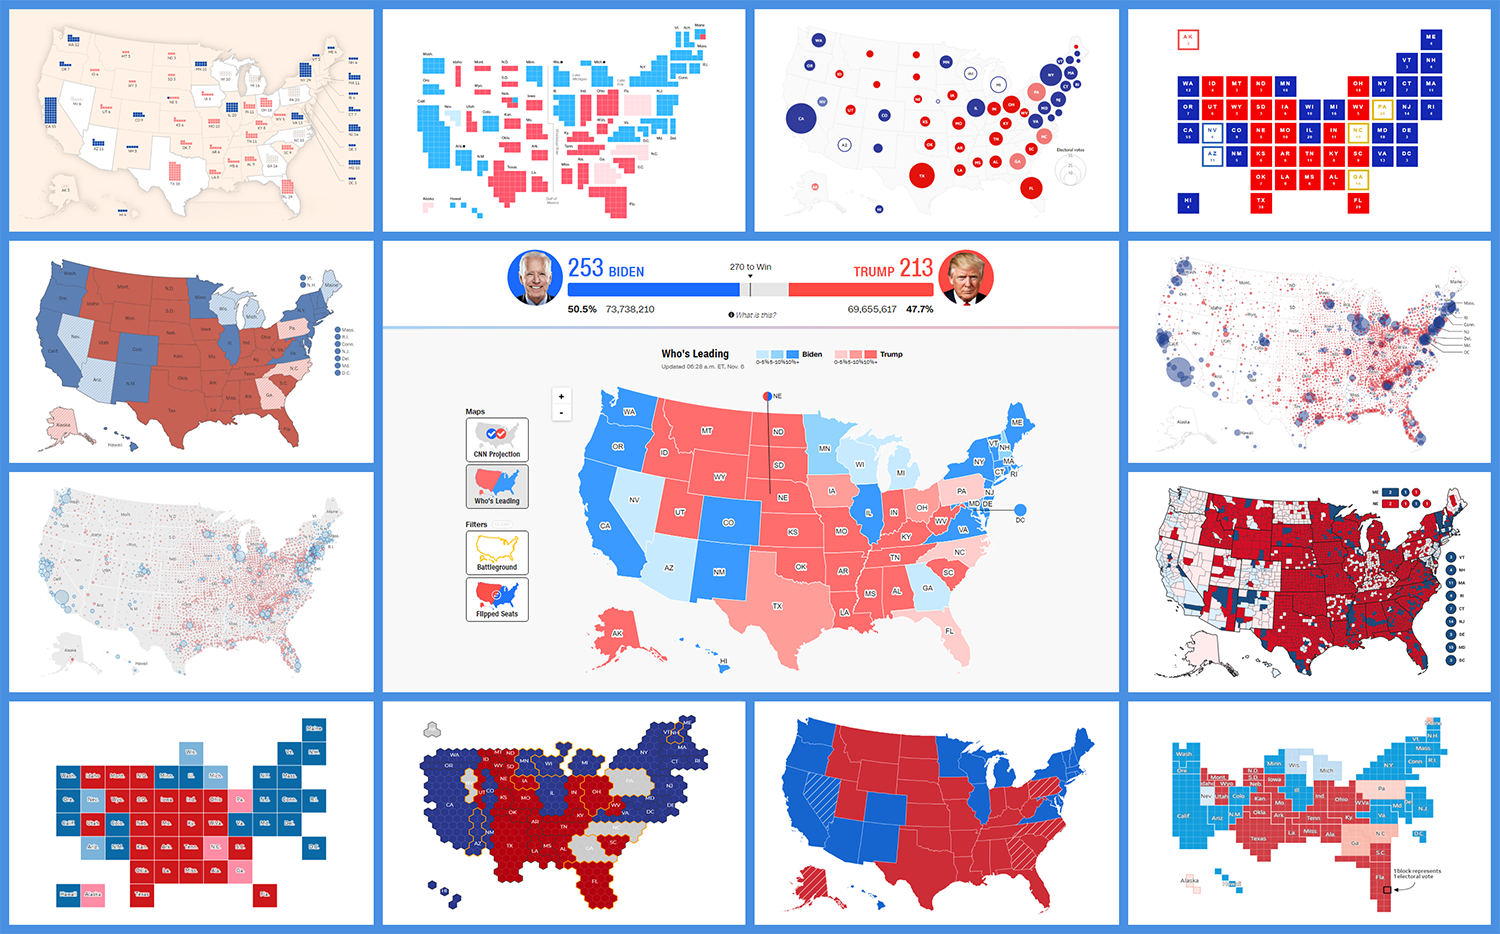 Us Presidential Election Map Election Maps Visualizing 2020 U.S. Presidential Electoral Vote